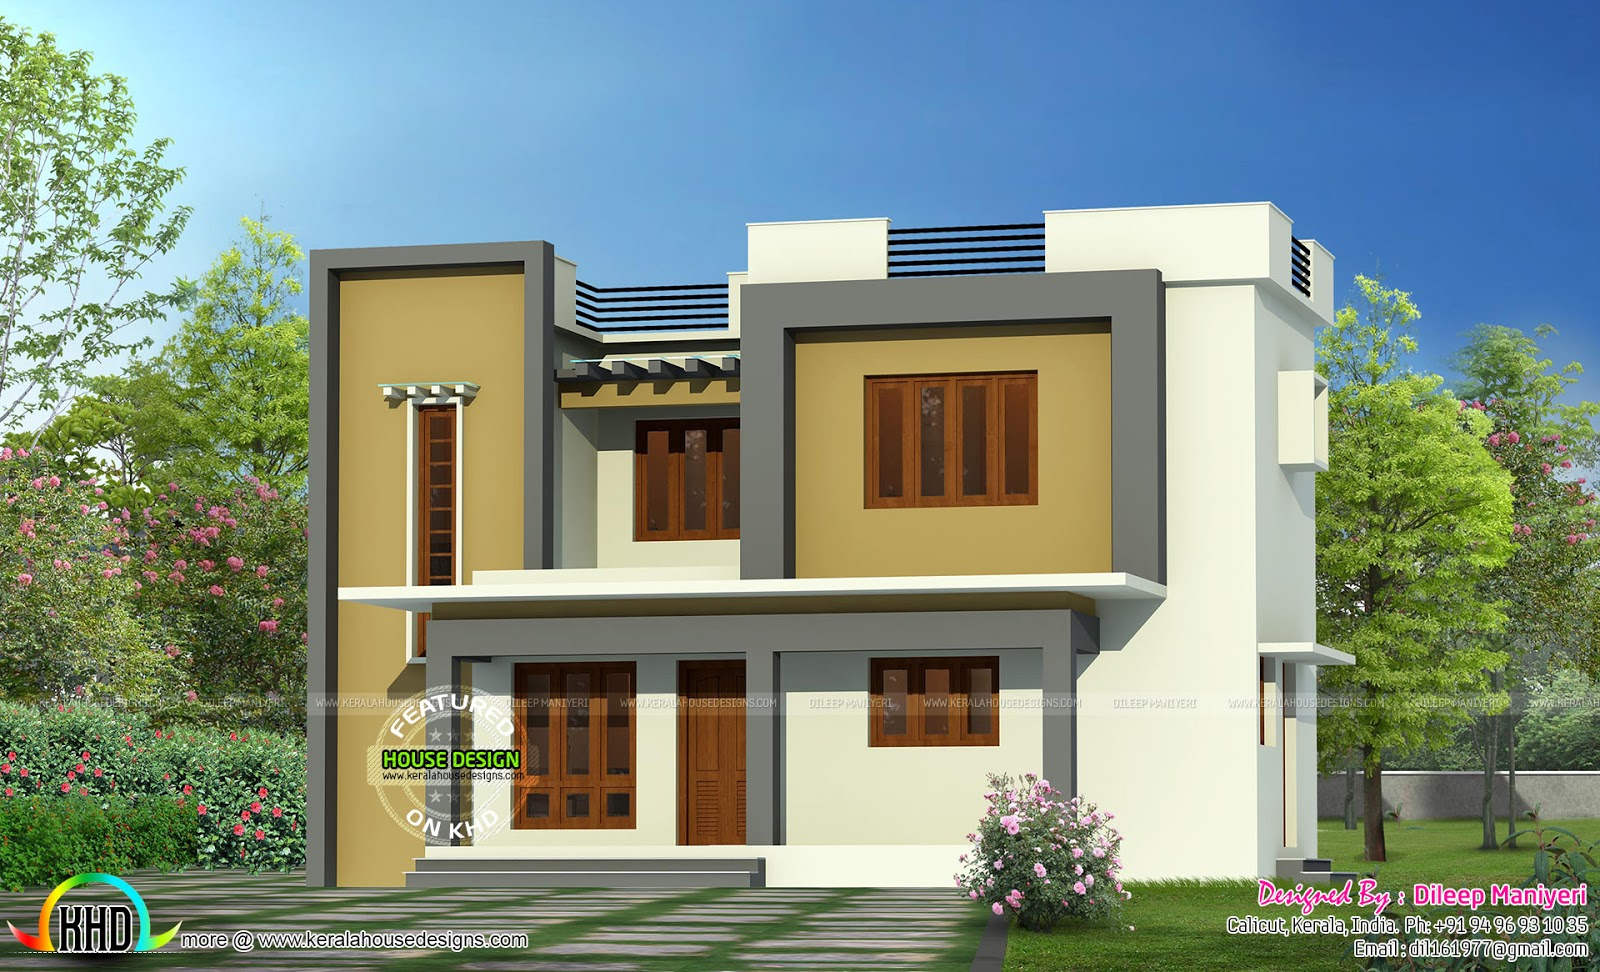 Simple flat roof home architecture kerala home design for Simple house design